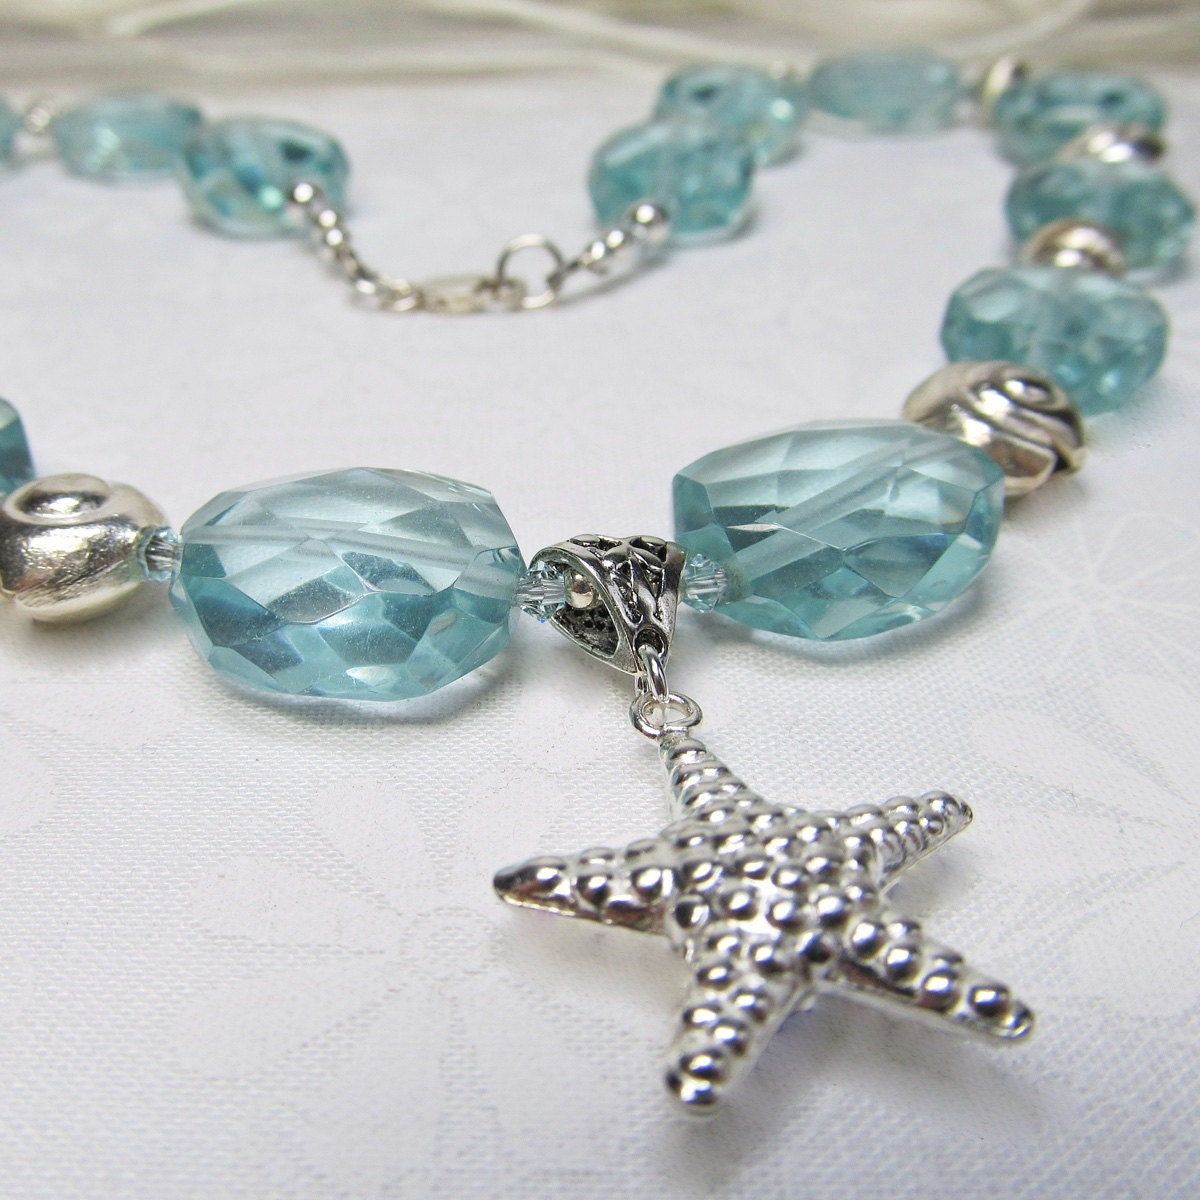 Aqua Blue Quartz Faceted Nugget Sterling Starfish Necklace